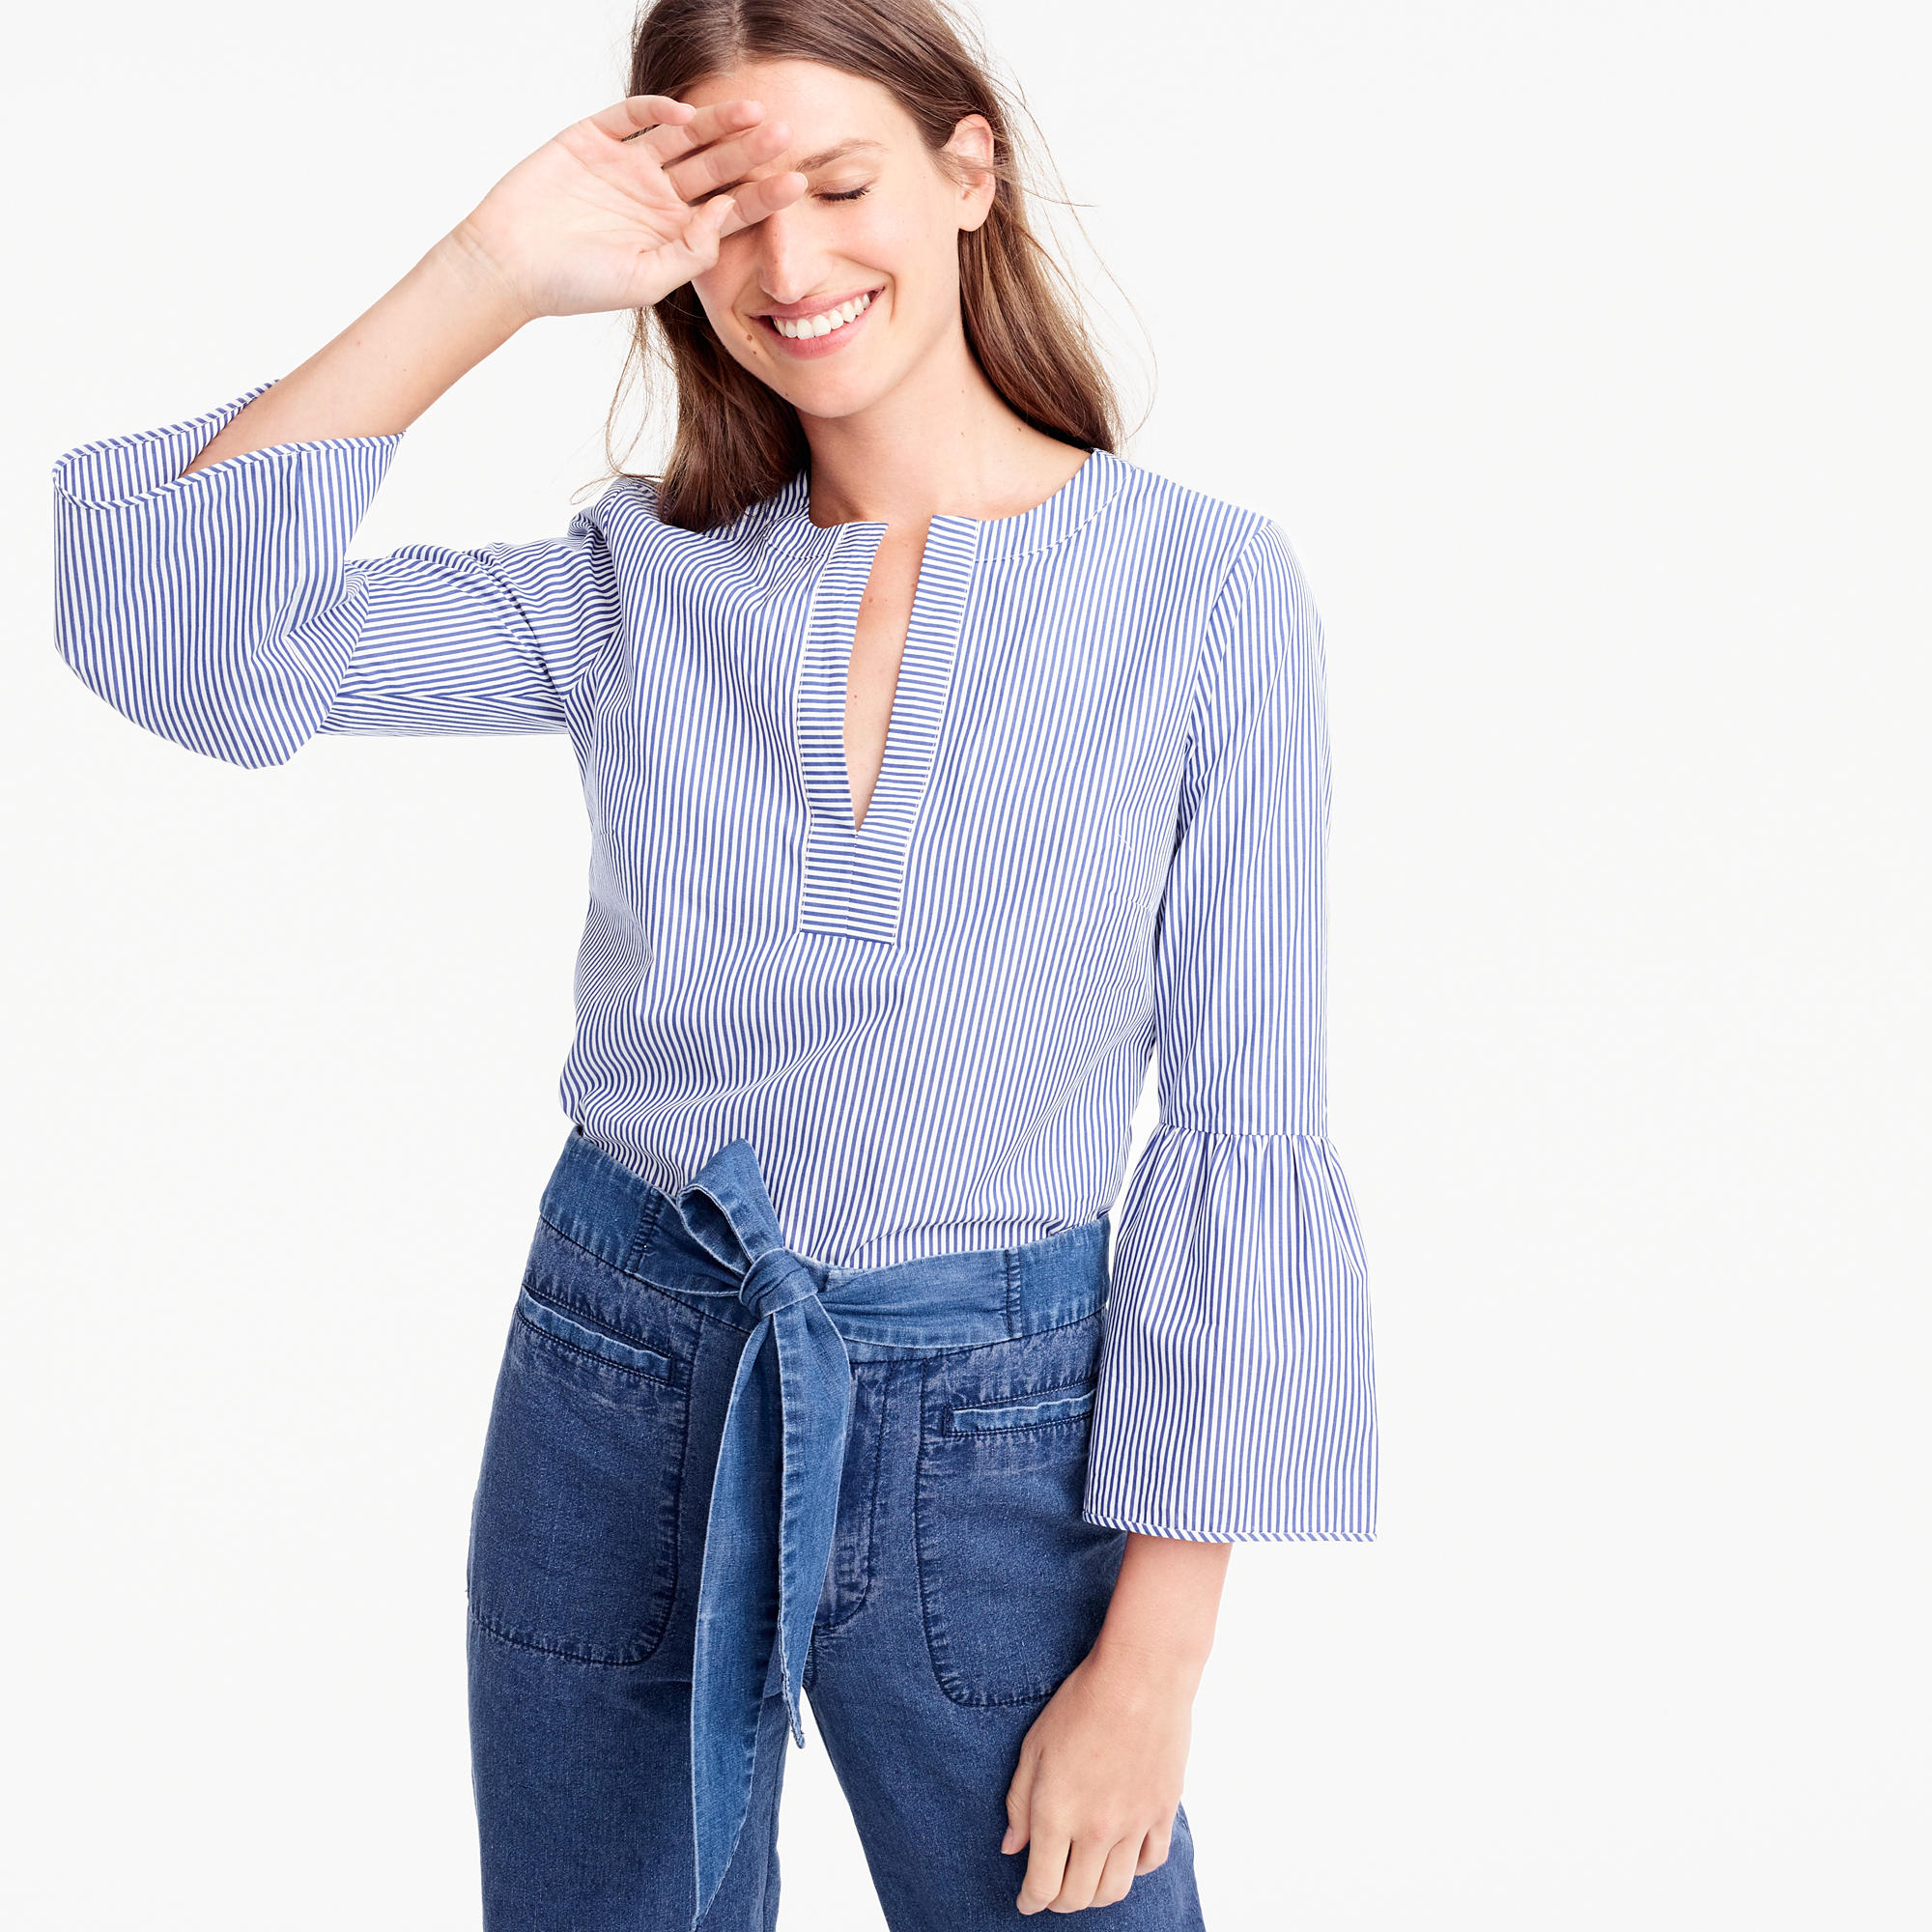 Women's Shirts & Blouses : Women's Shirts & Tops | J.Crew